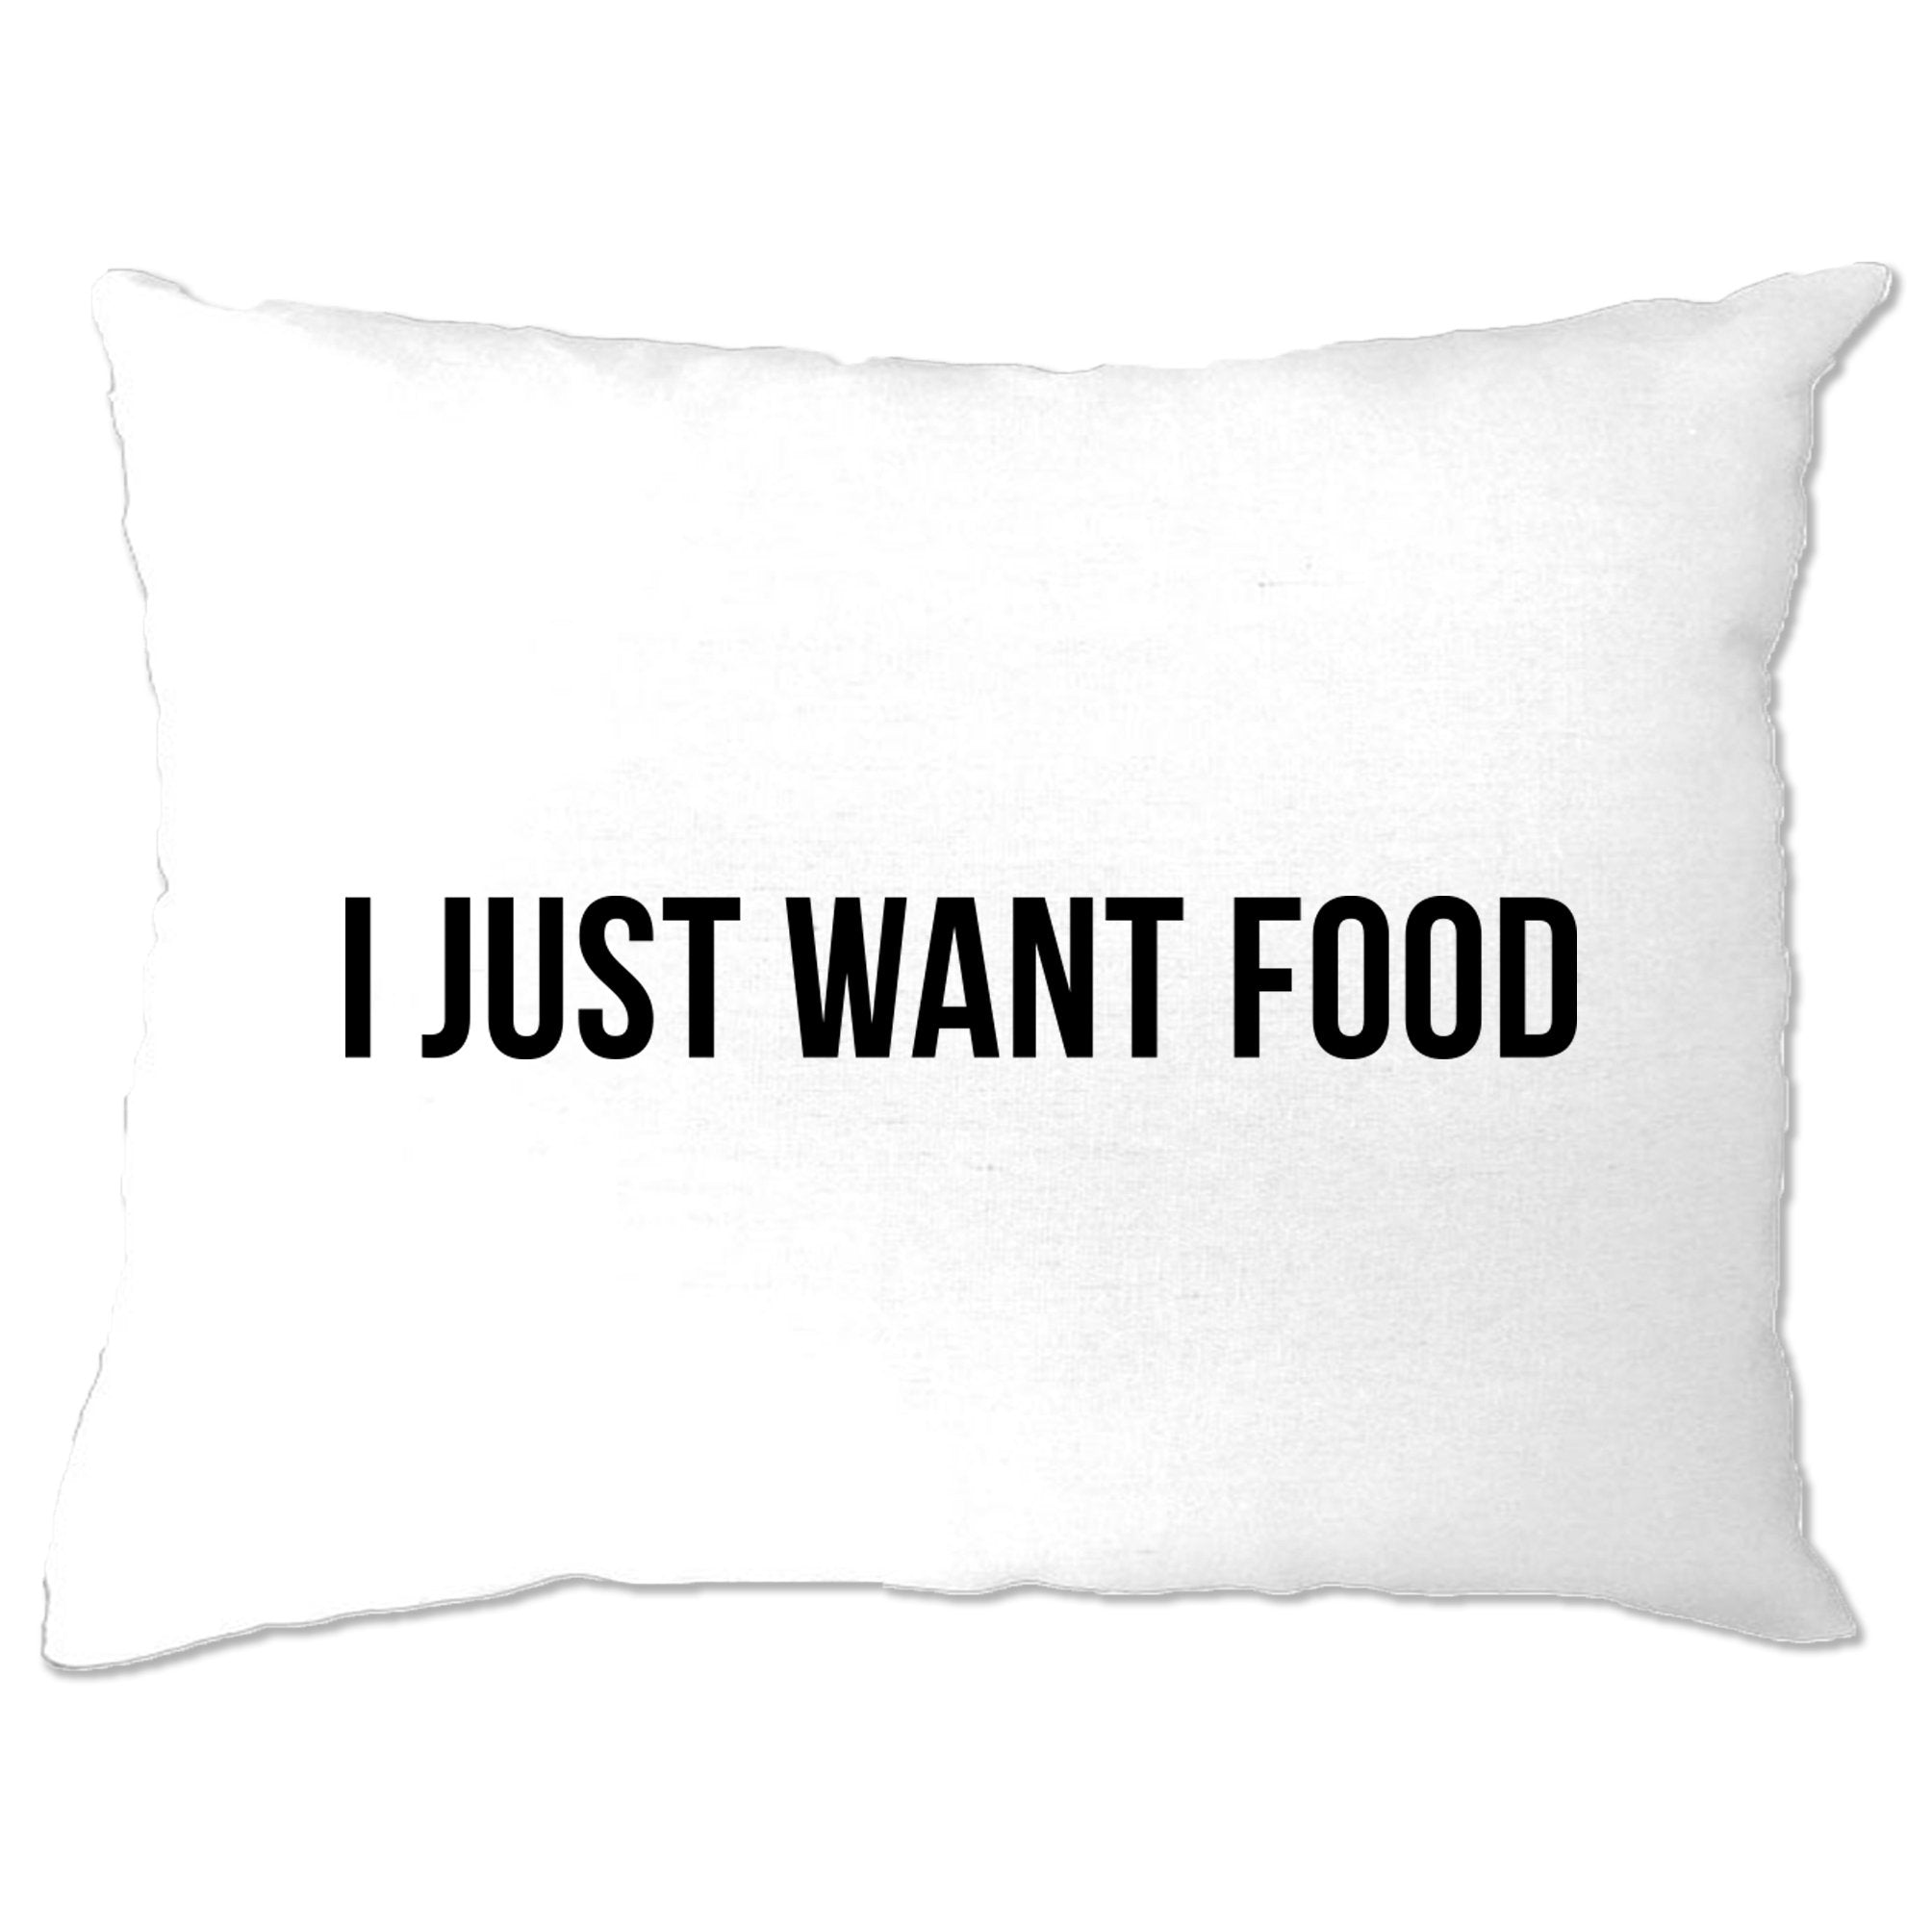 Novelty Pillow Case I Just Want Food Slogan